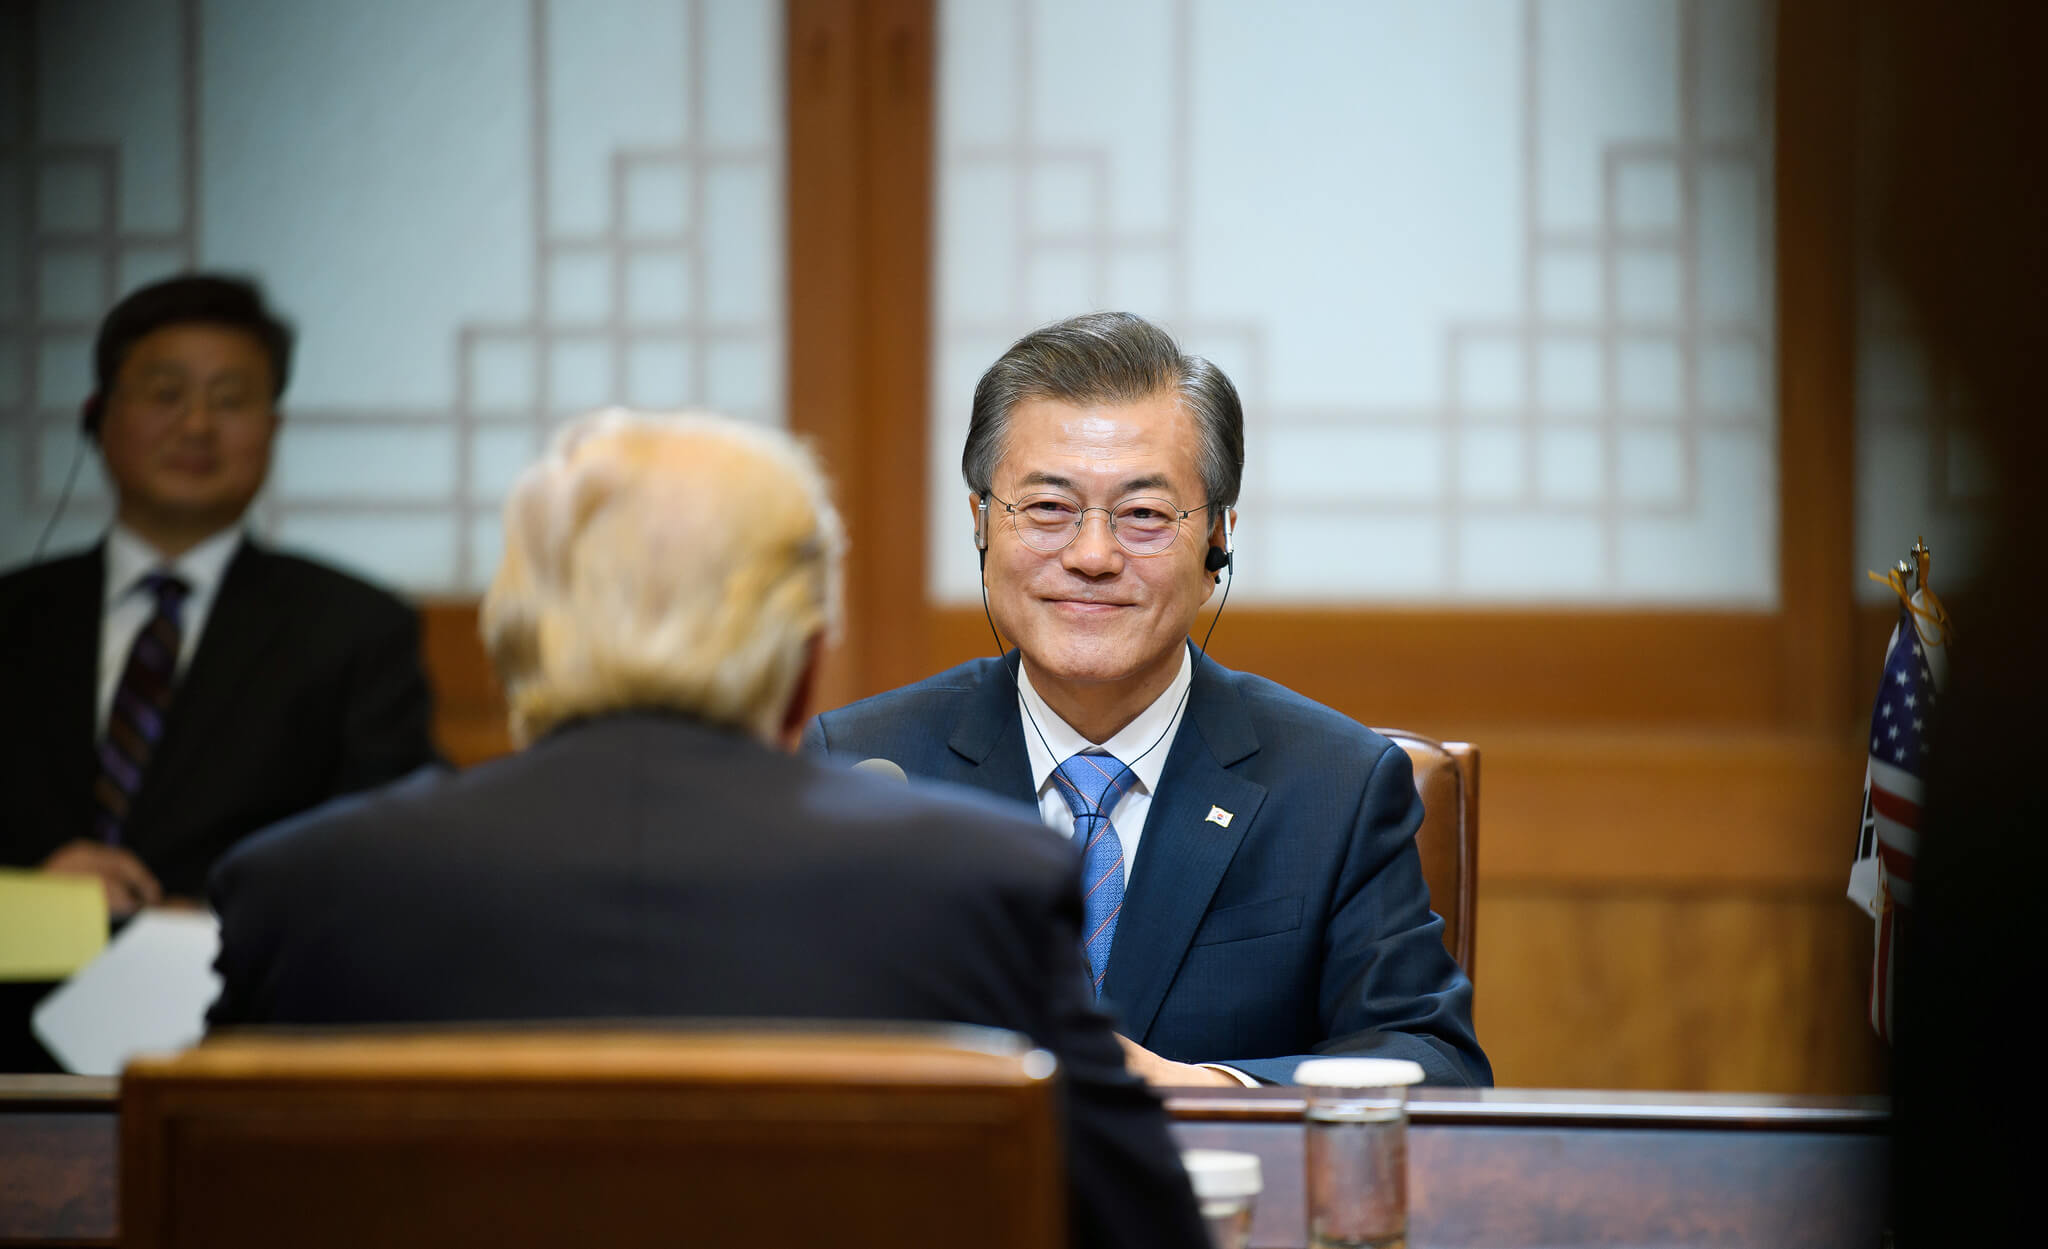 Zuid-Koreaans president Moon Jae-in en Donald Trump in Seoul in 2017 (8 nov 2017)-Flickr-Republic of Korea